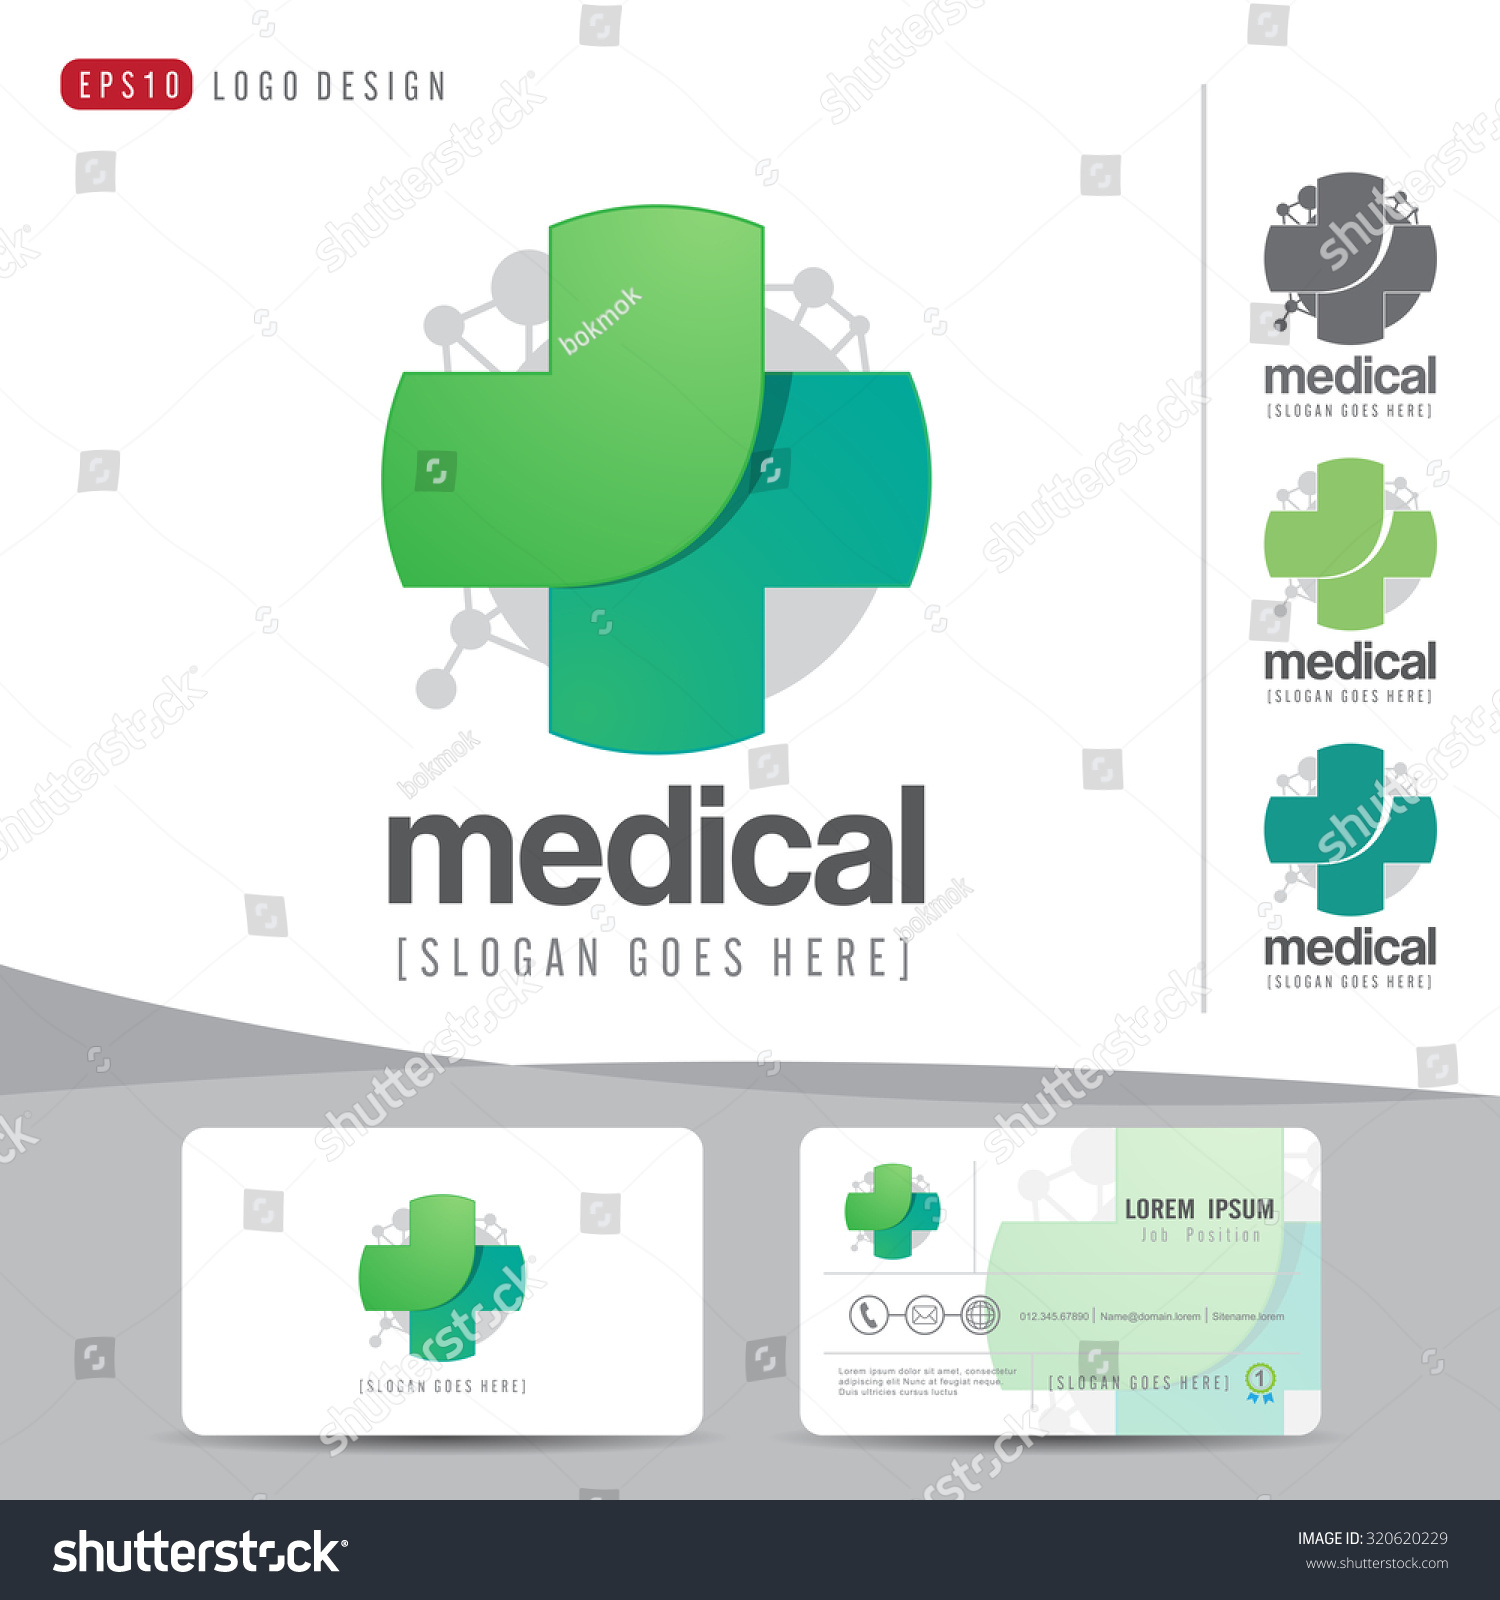 logo design medical healthcare hospital business stock vector